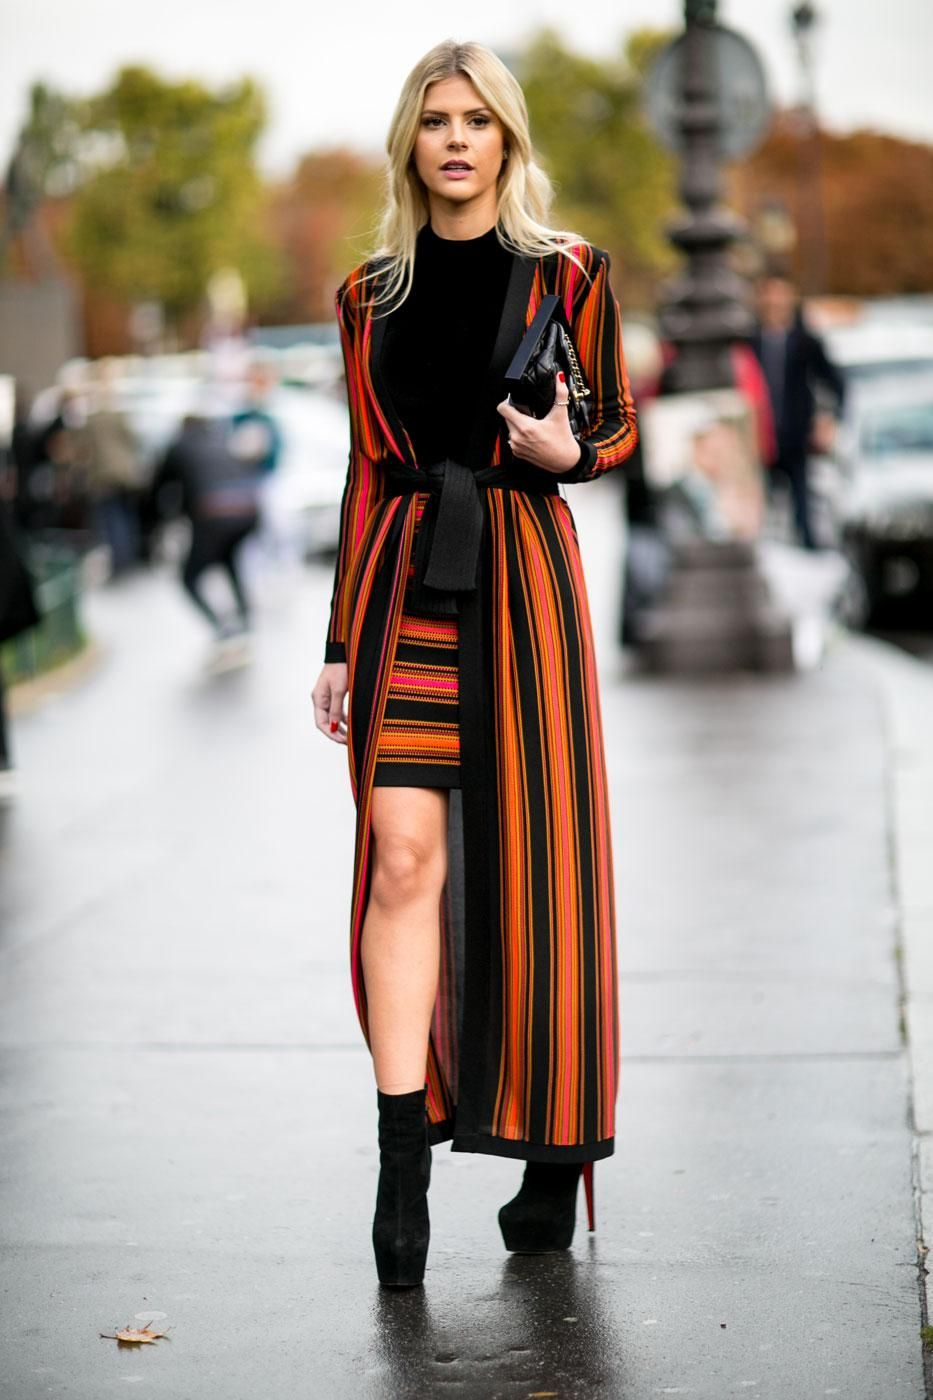 Paris Fashion Week Street Style Spring 2015: Stunning Street Style From Paris Fashion Week